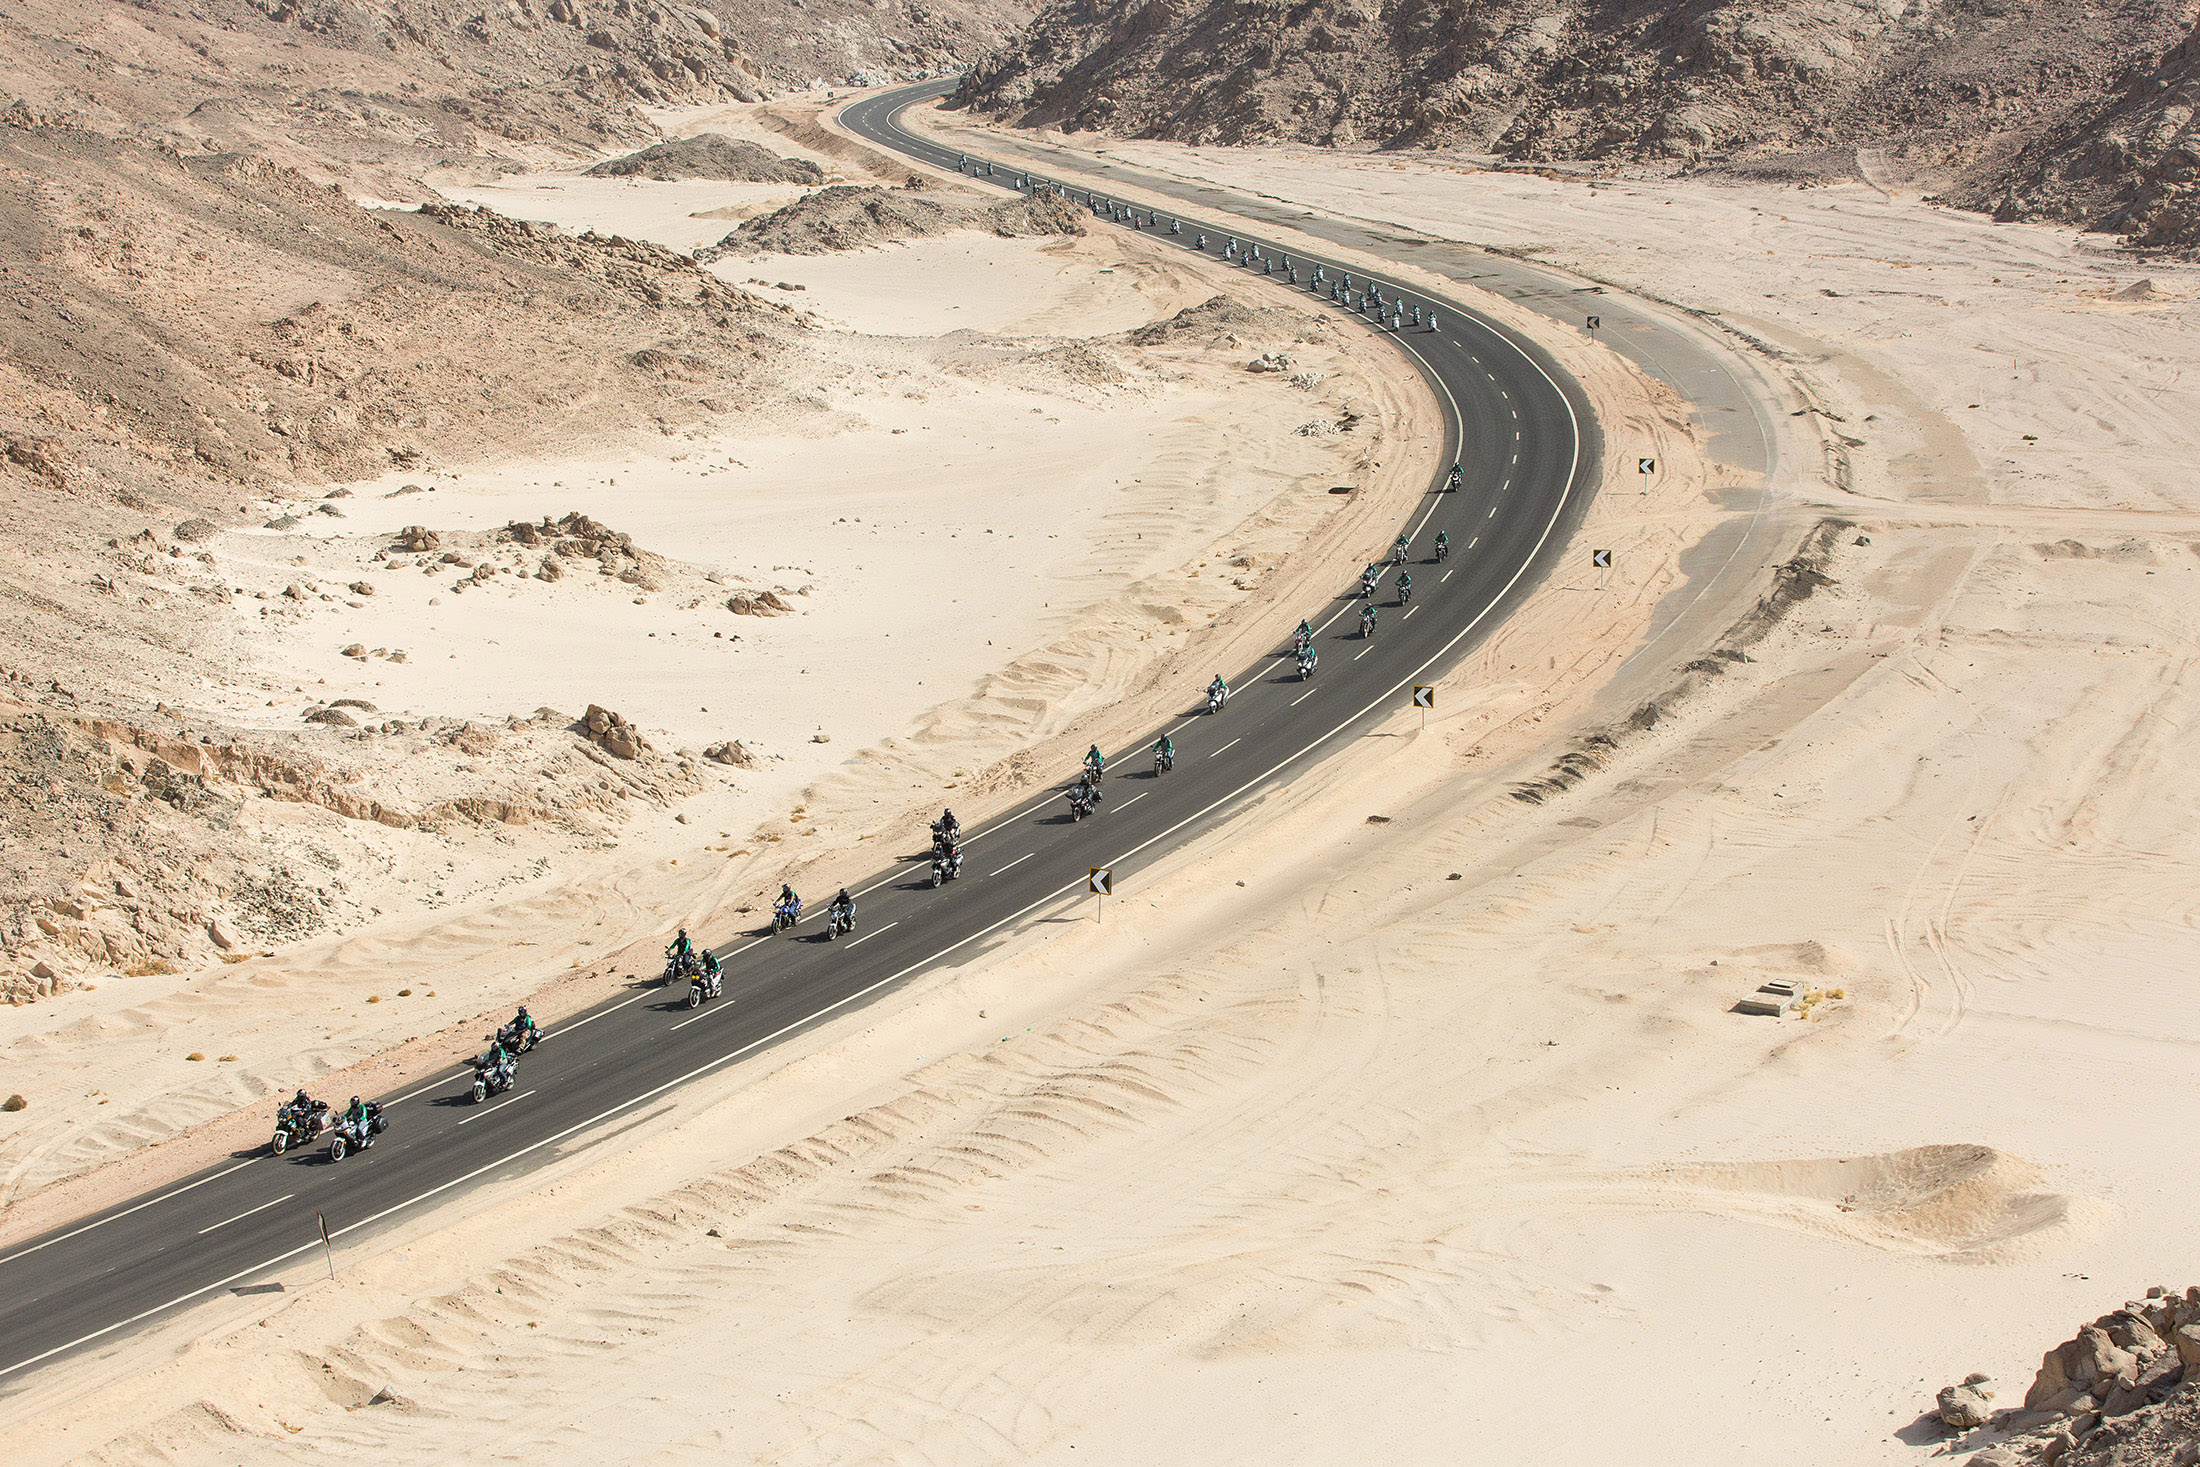 Aerial view of motorcyclists on an asphalt road in the desert on the Cross Egypt Challenge